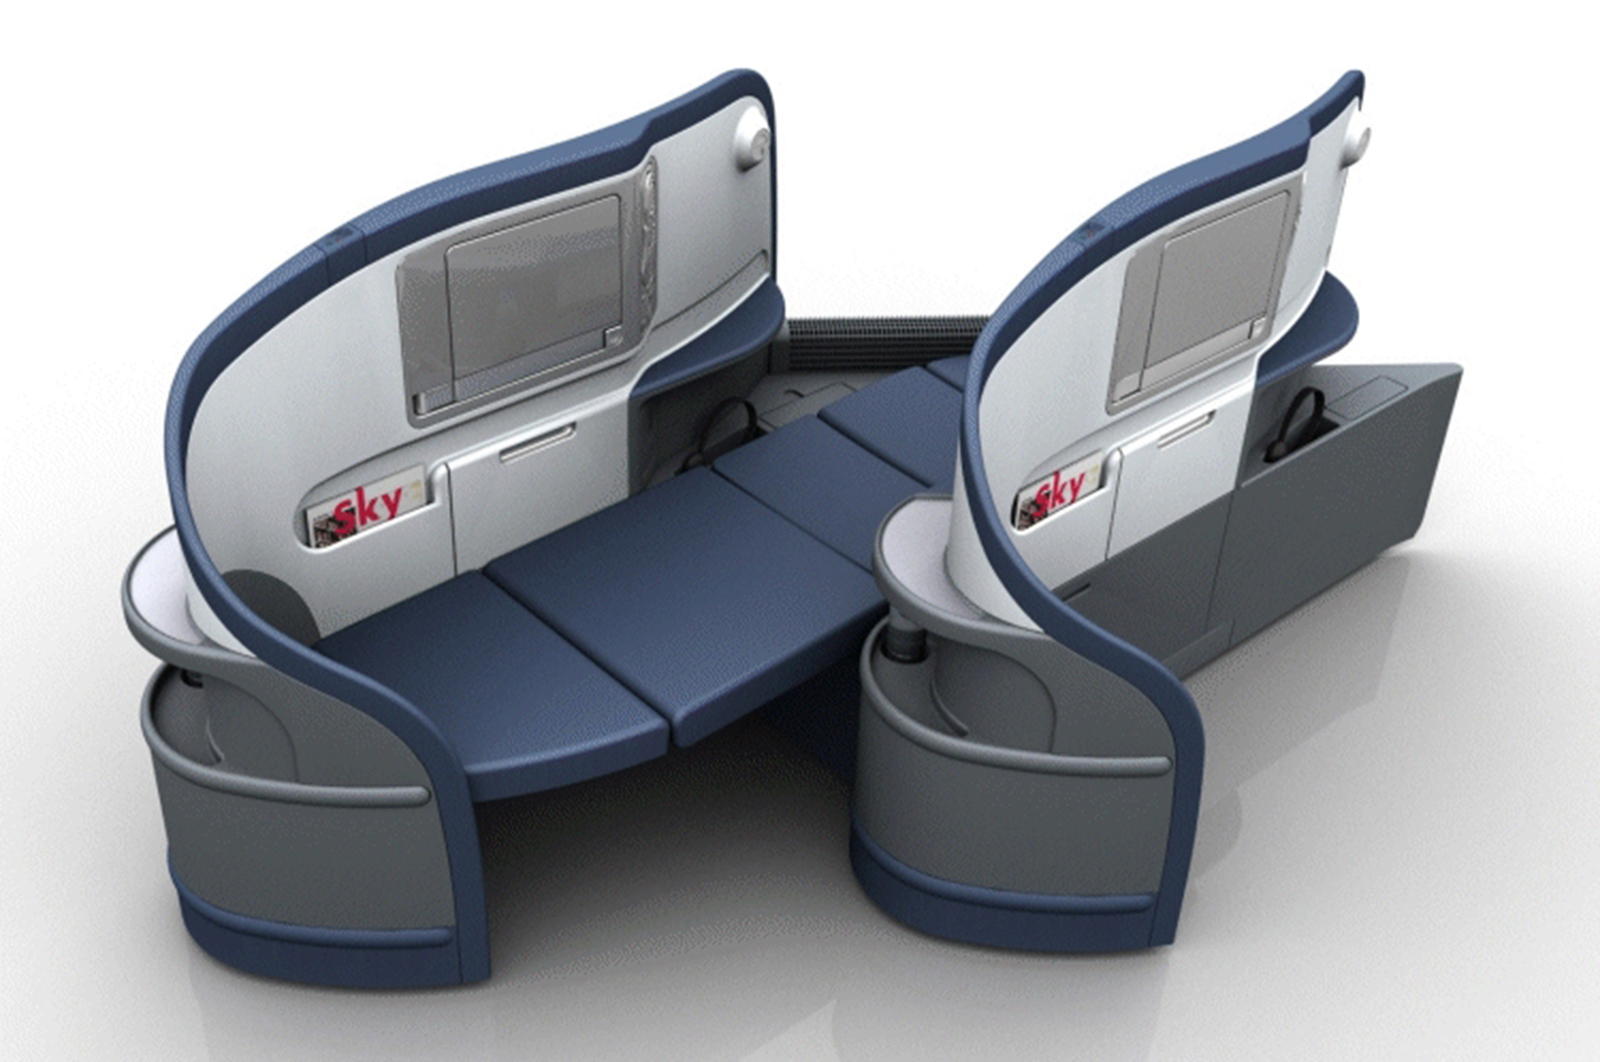 Delta Completes Full Flat Bed Seats Installation On All